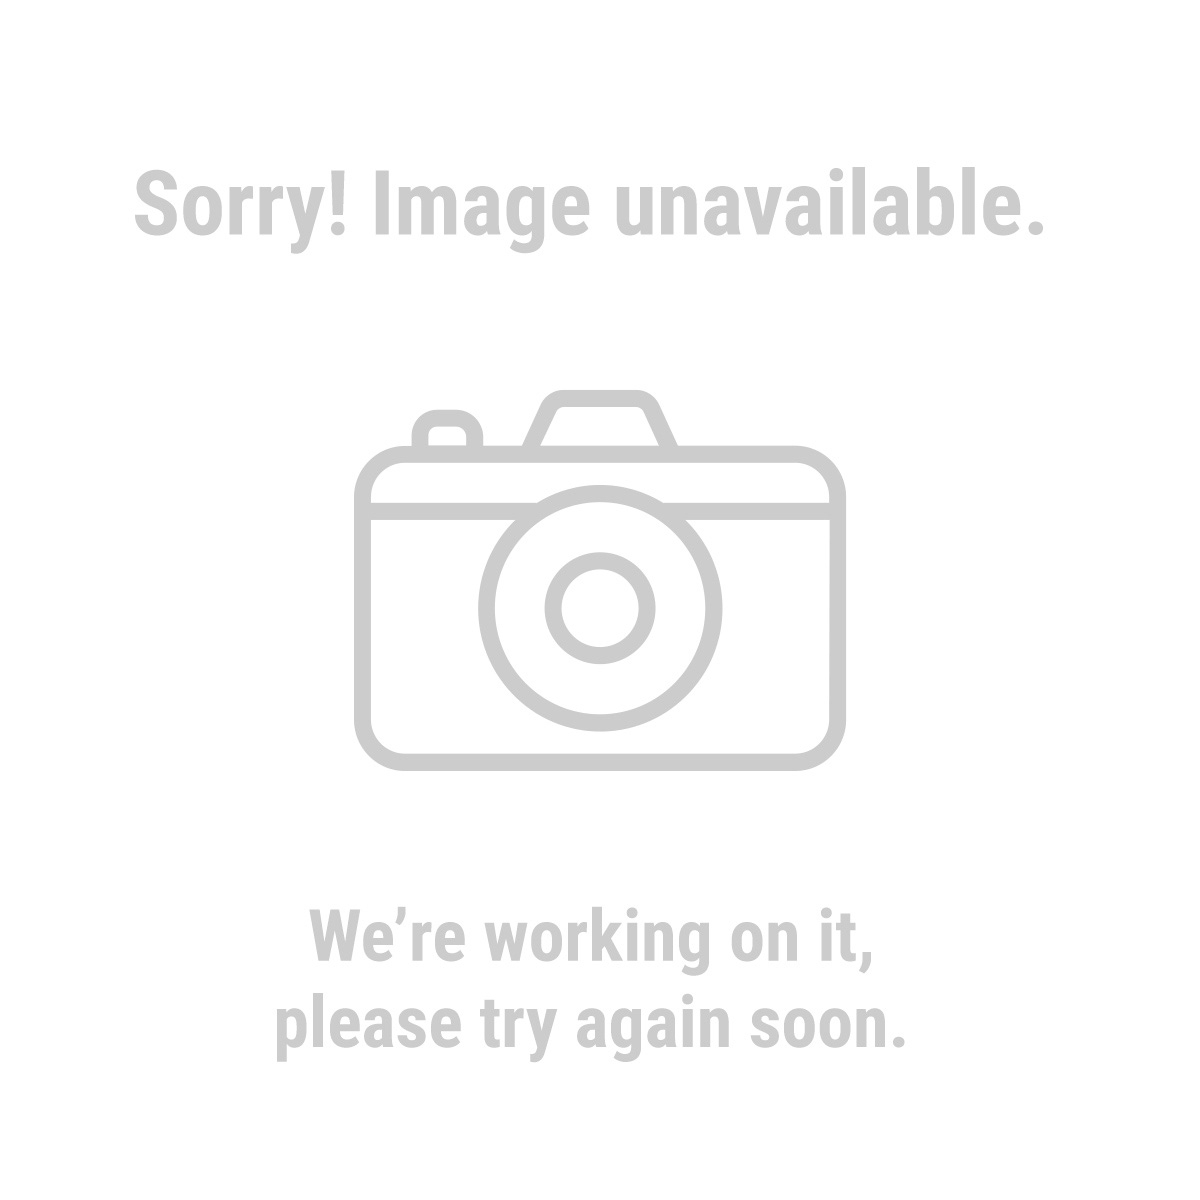 Drill Master 62869 18 Volt 3/8 in. Cordless Drill/Driver And Flashlight Kit